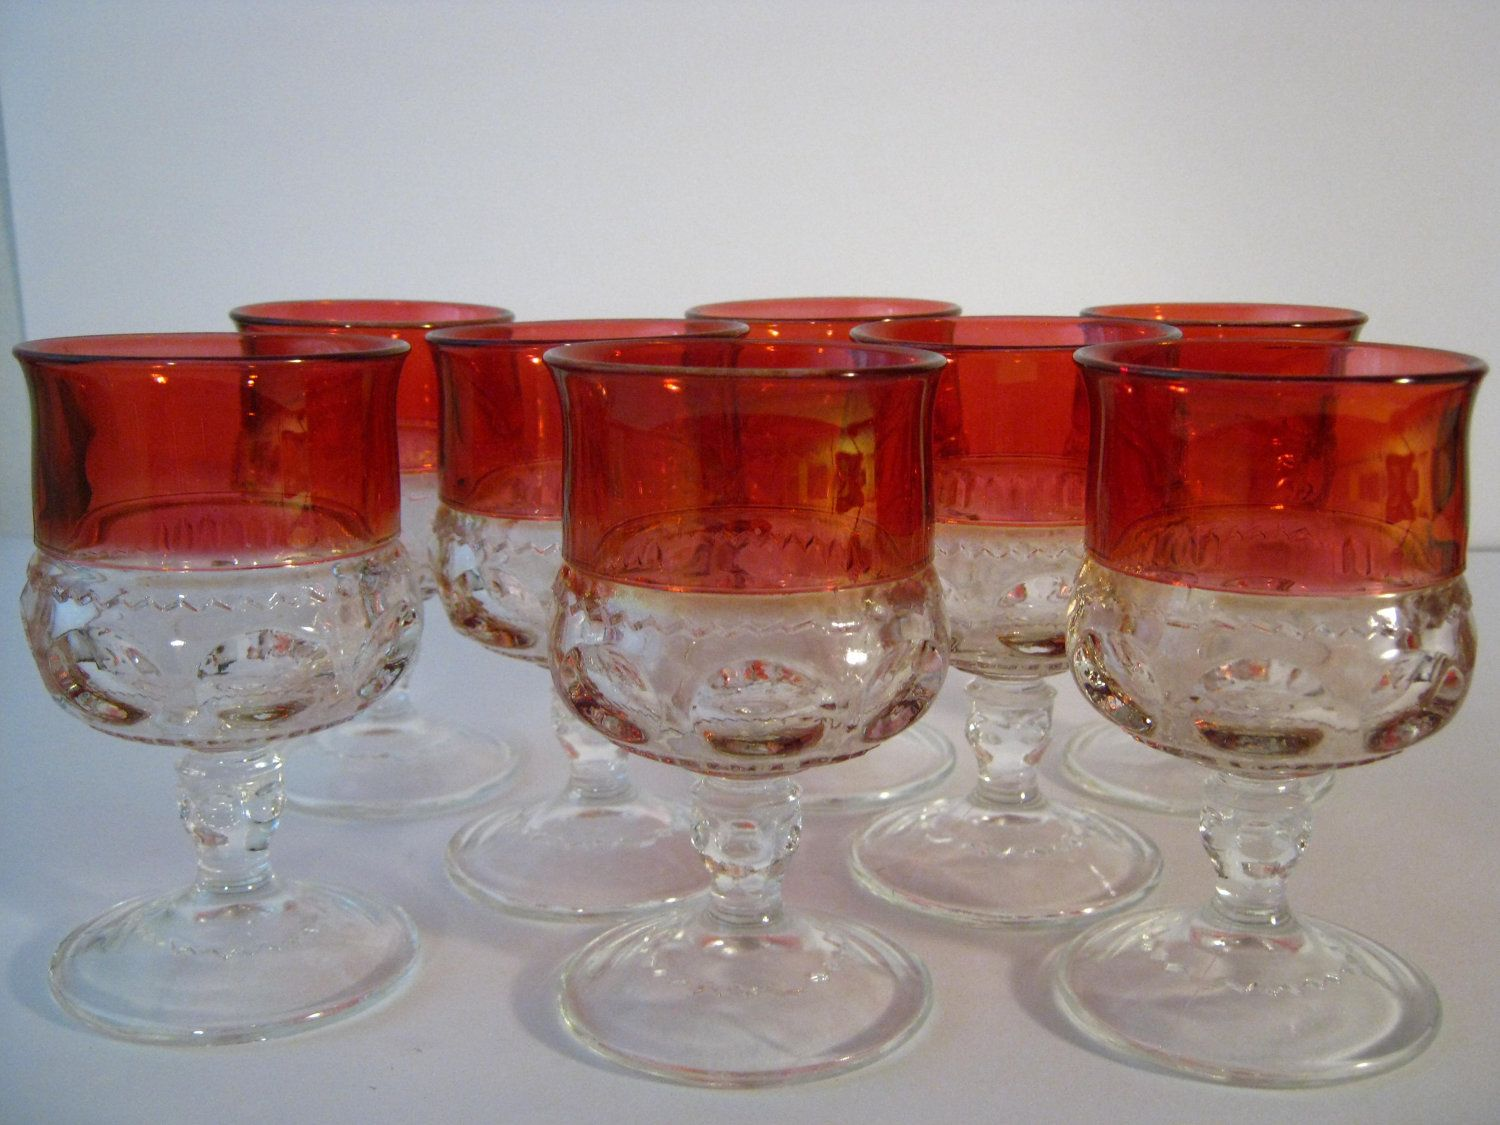 Vintage King S Crown Ruby Flash Thumbprint Wine Glasses I Bought These For My Mom To Go With Her Dishes Mason Jar Wine Glass Vintage Glassware Kings Crown